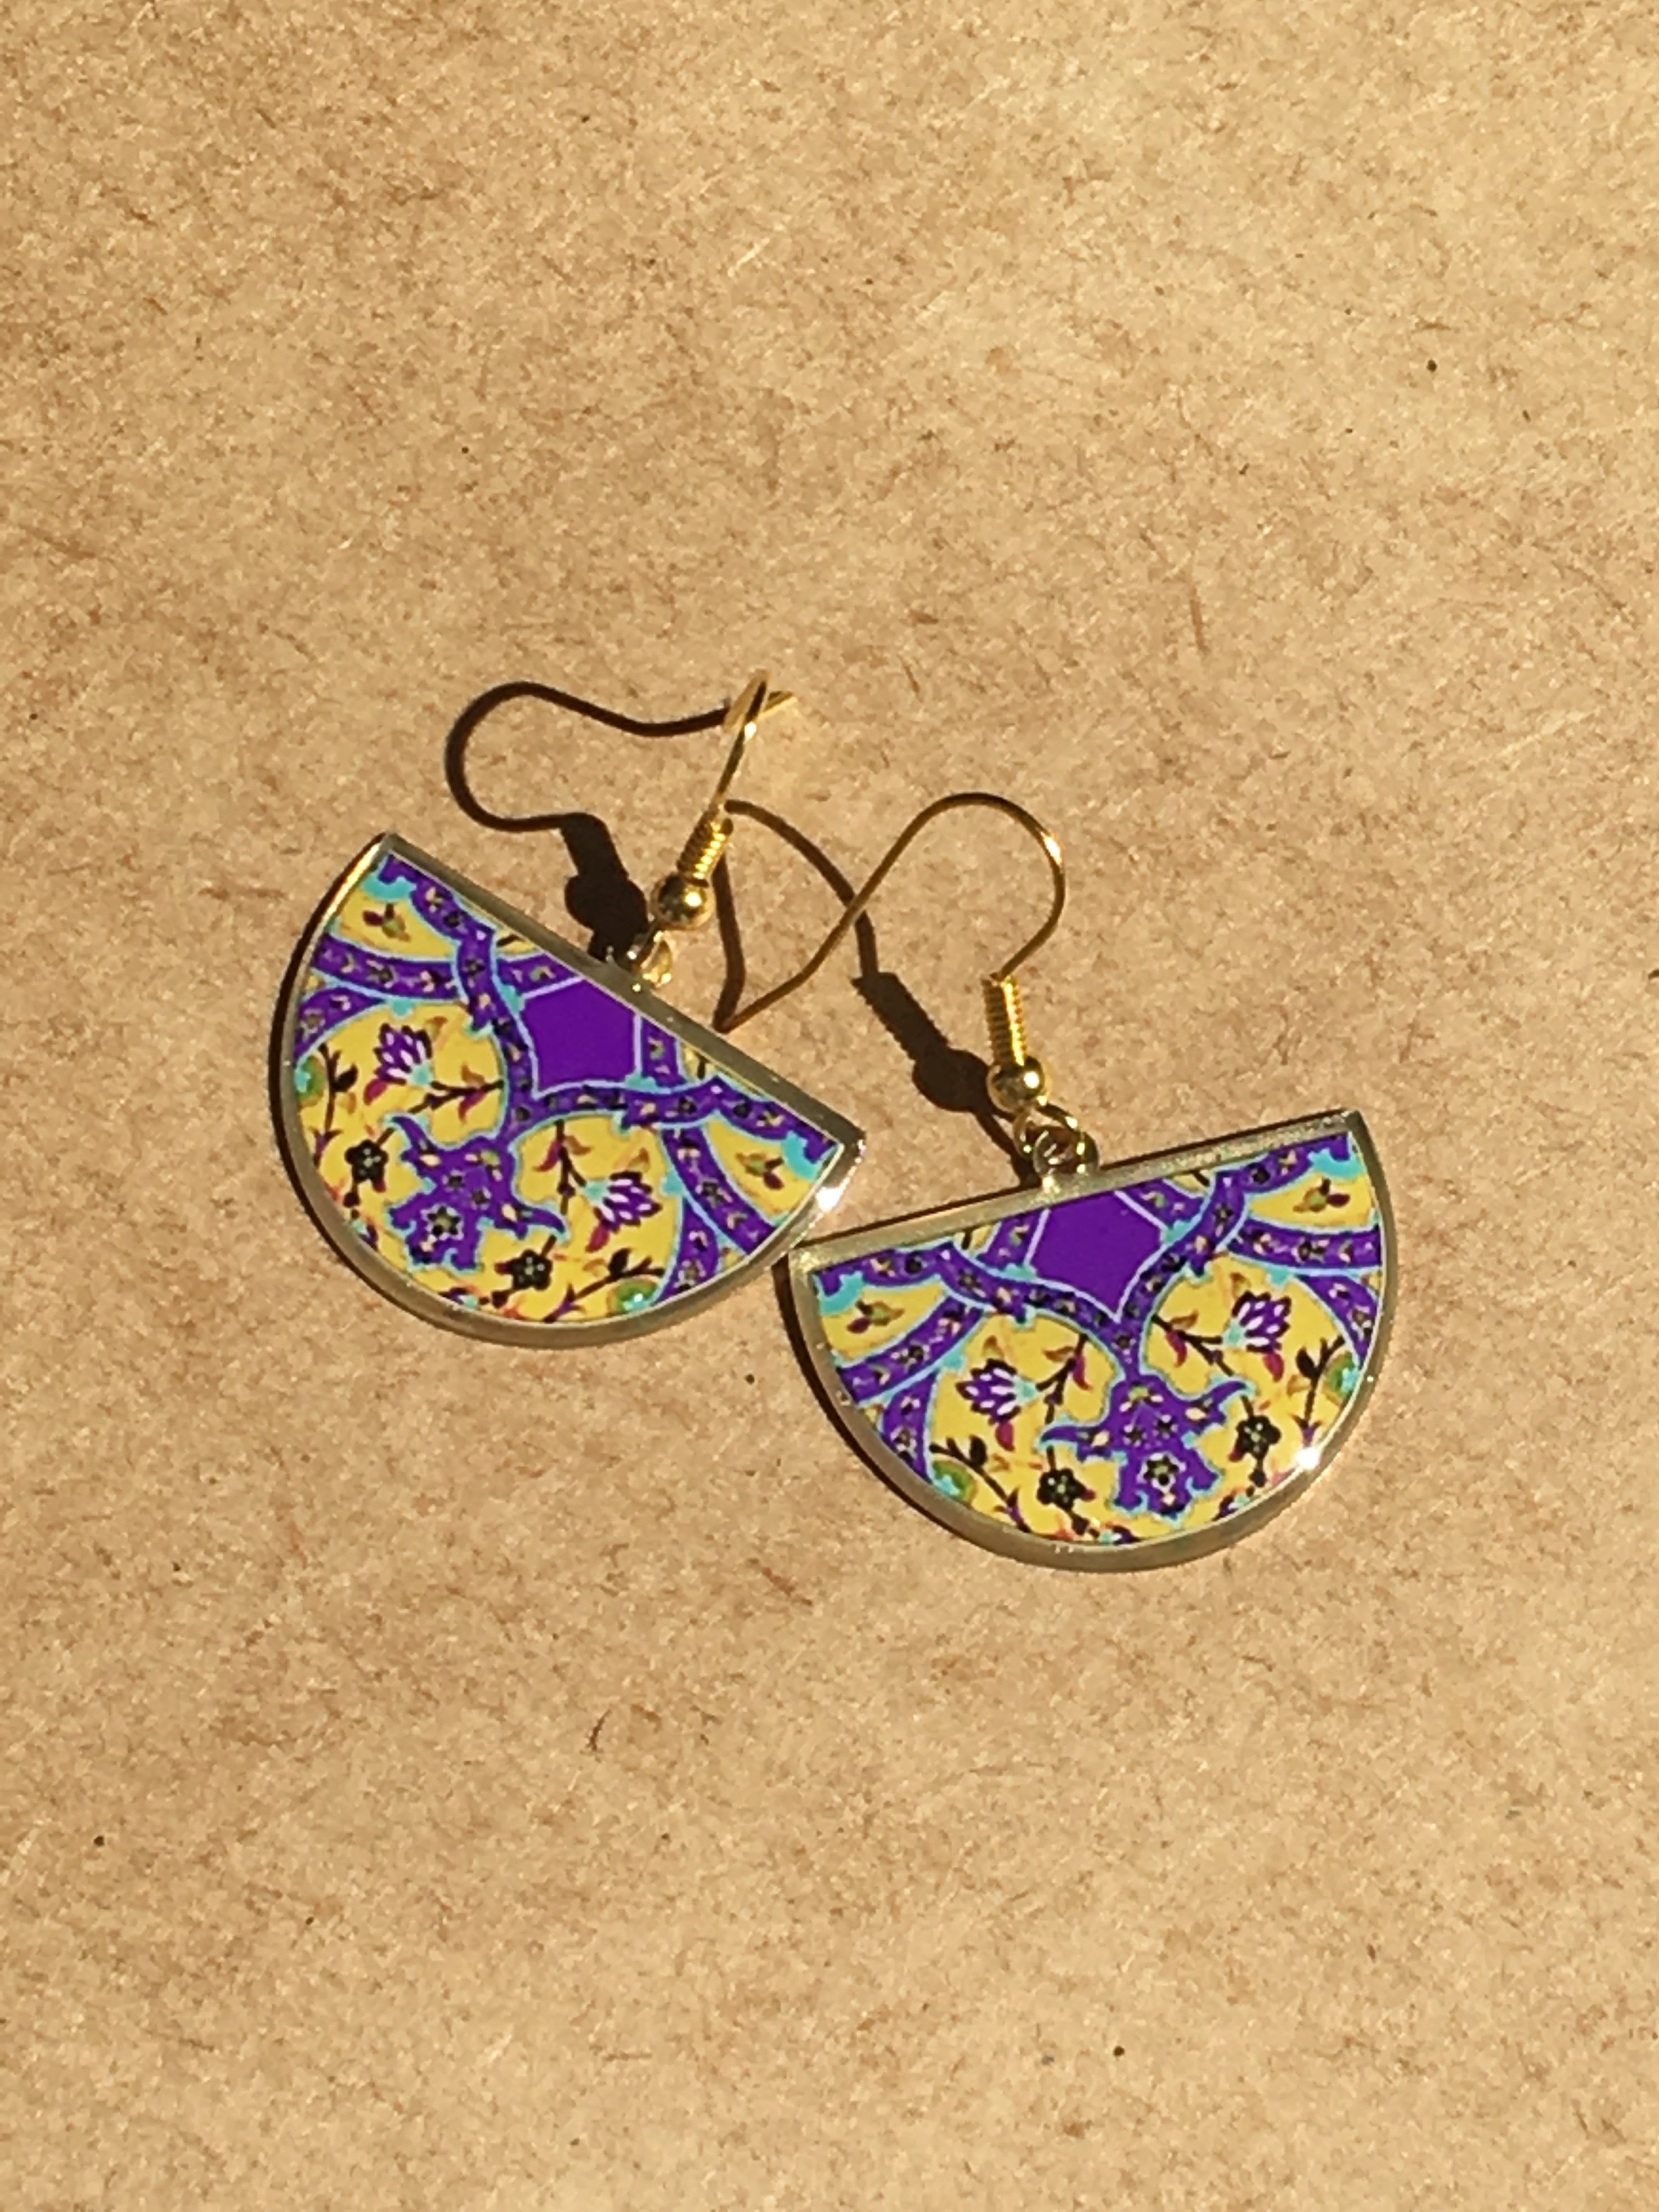 turkish persian pattern yellow and purple half circle earrings dangle chic trendy brass earrings